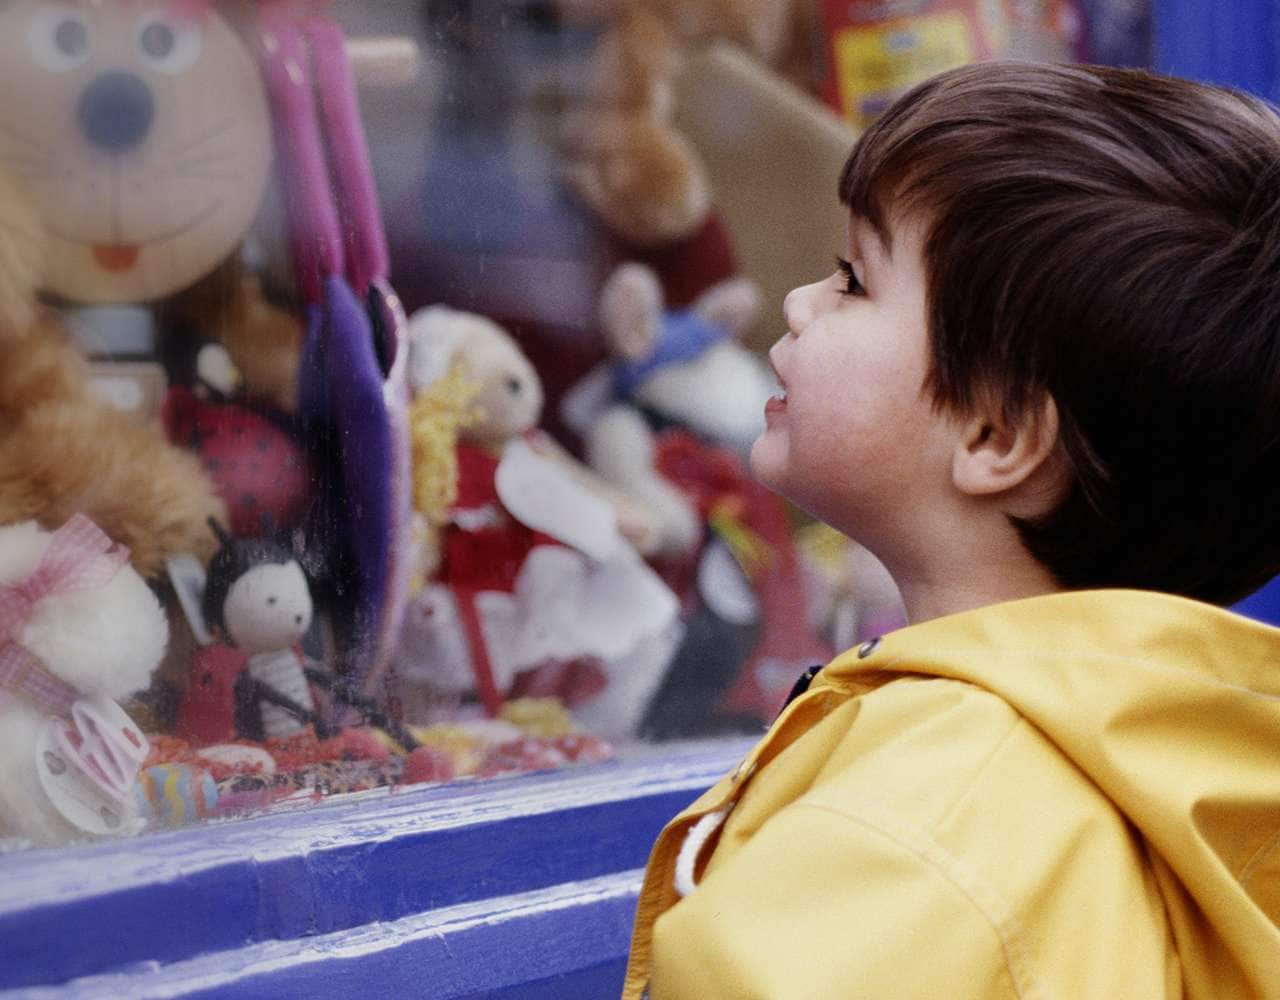 Kid looking at toys